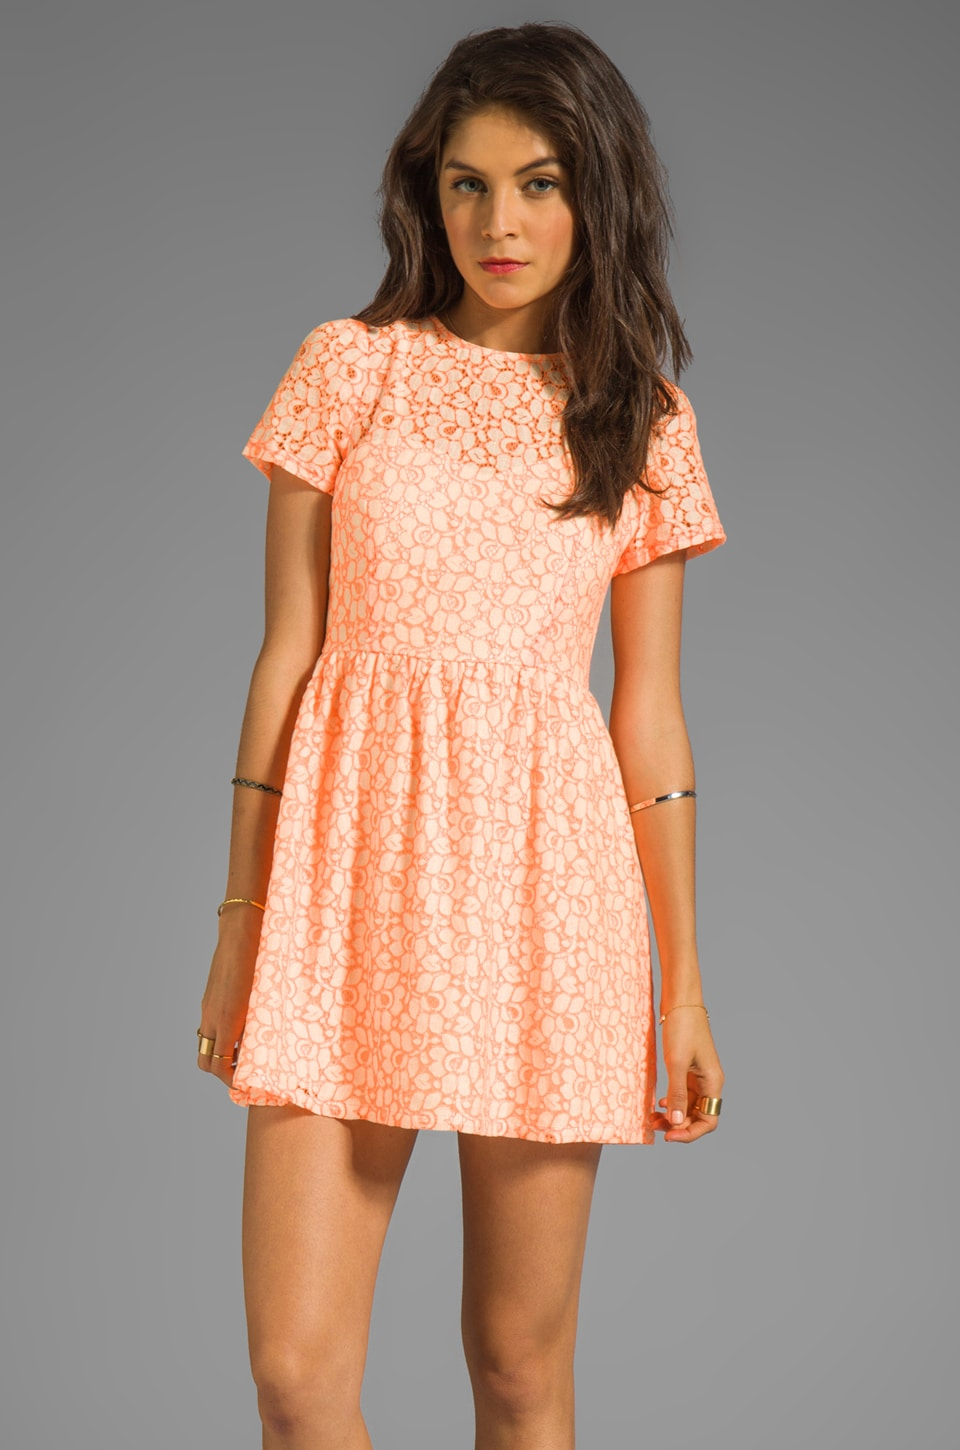 MM Couture by Miss Me Short Sleeve Lace Dress in Orange